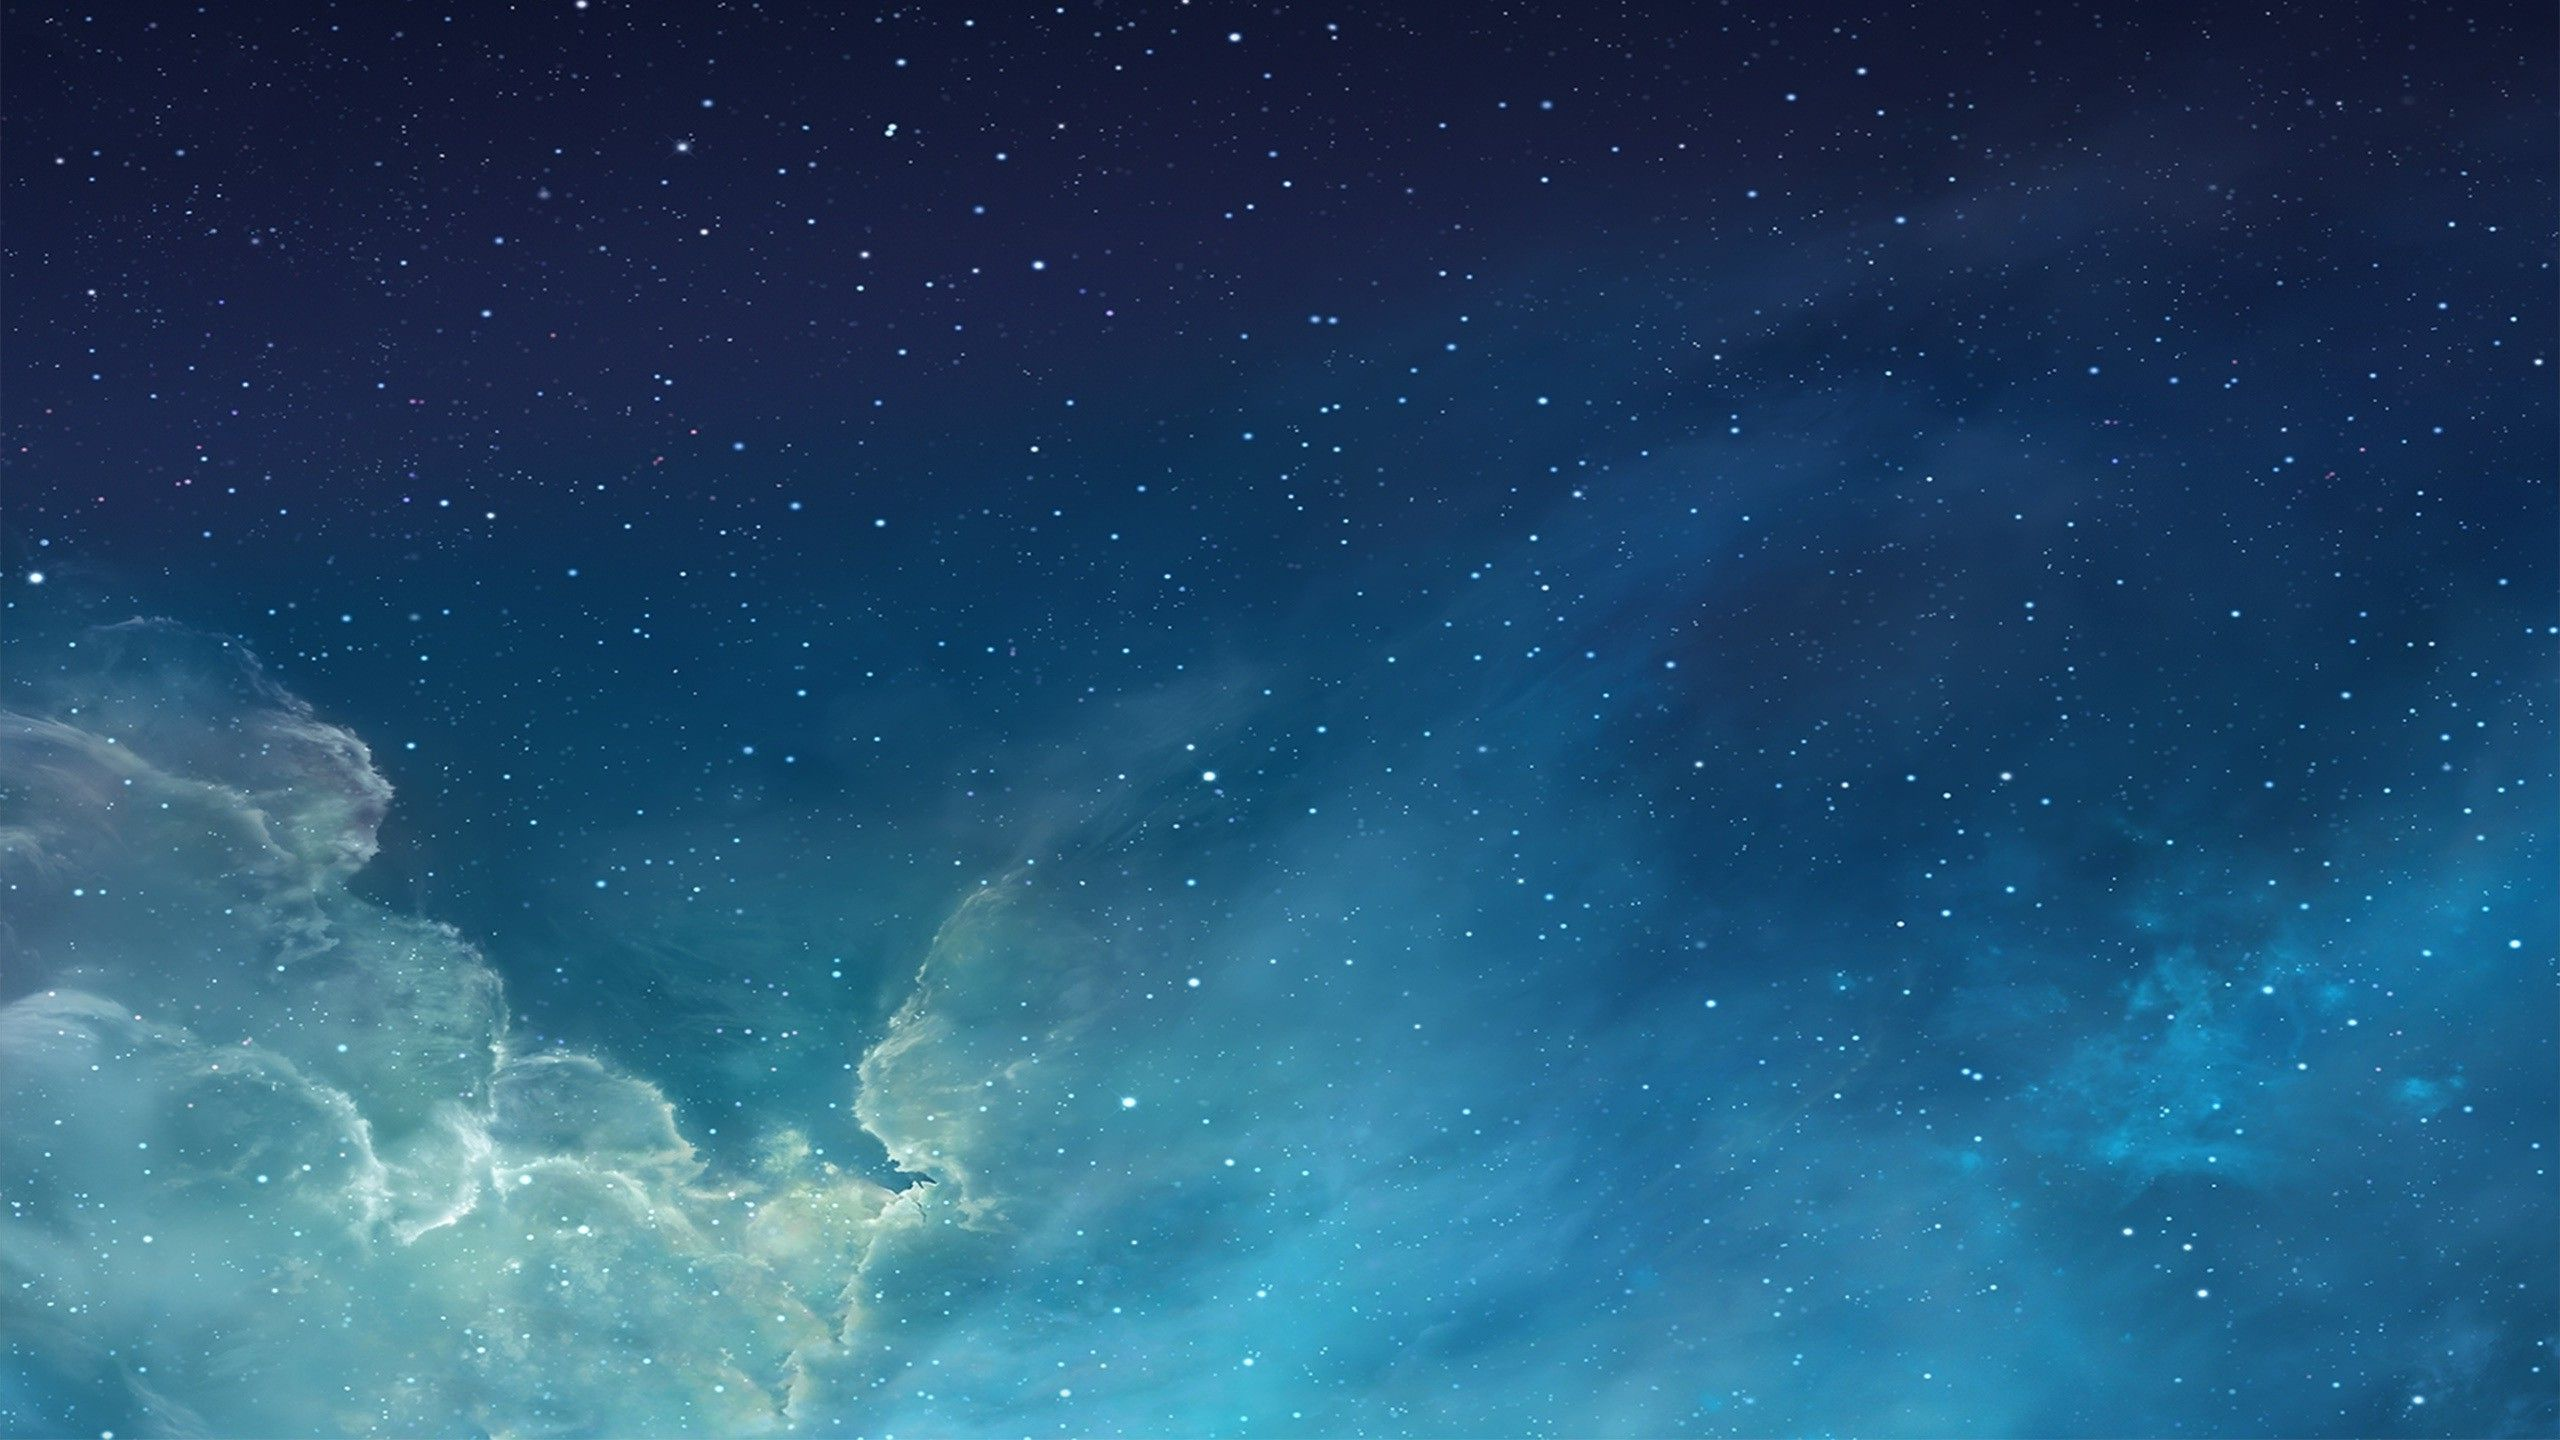 Stars HD Wallpaper